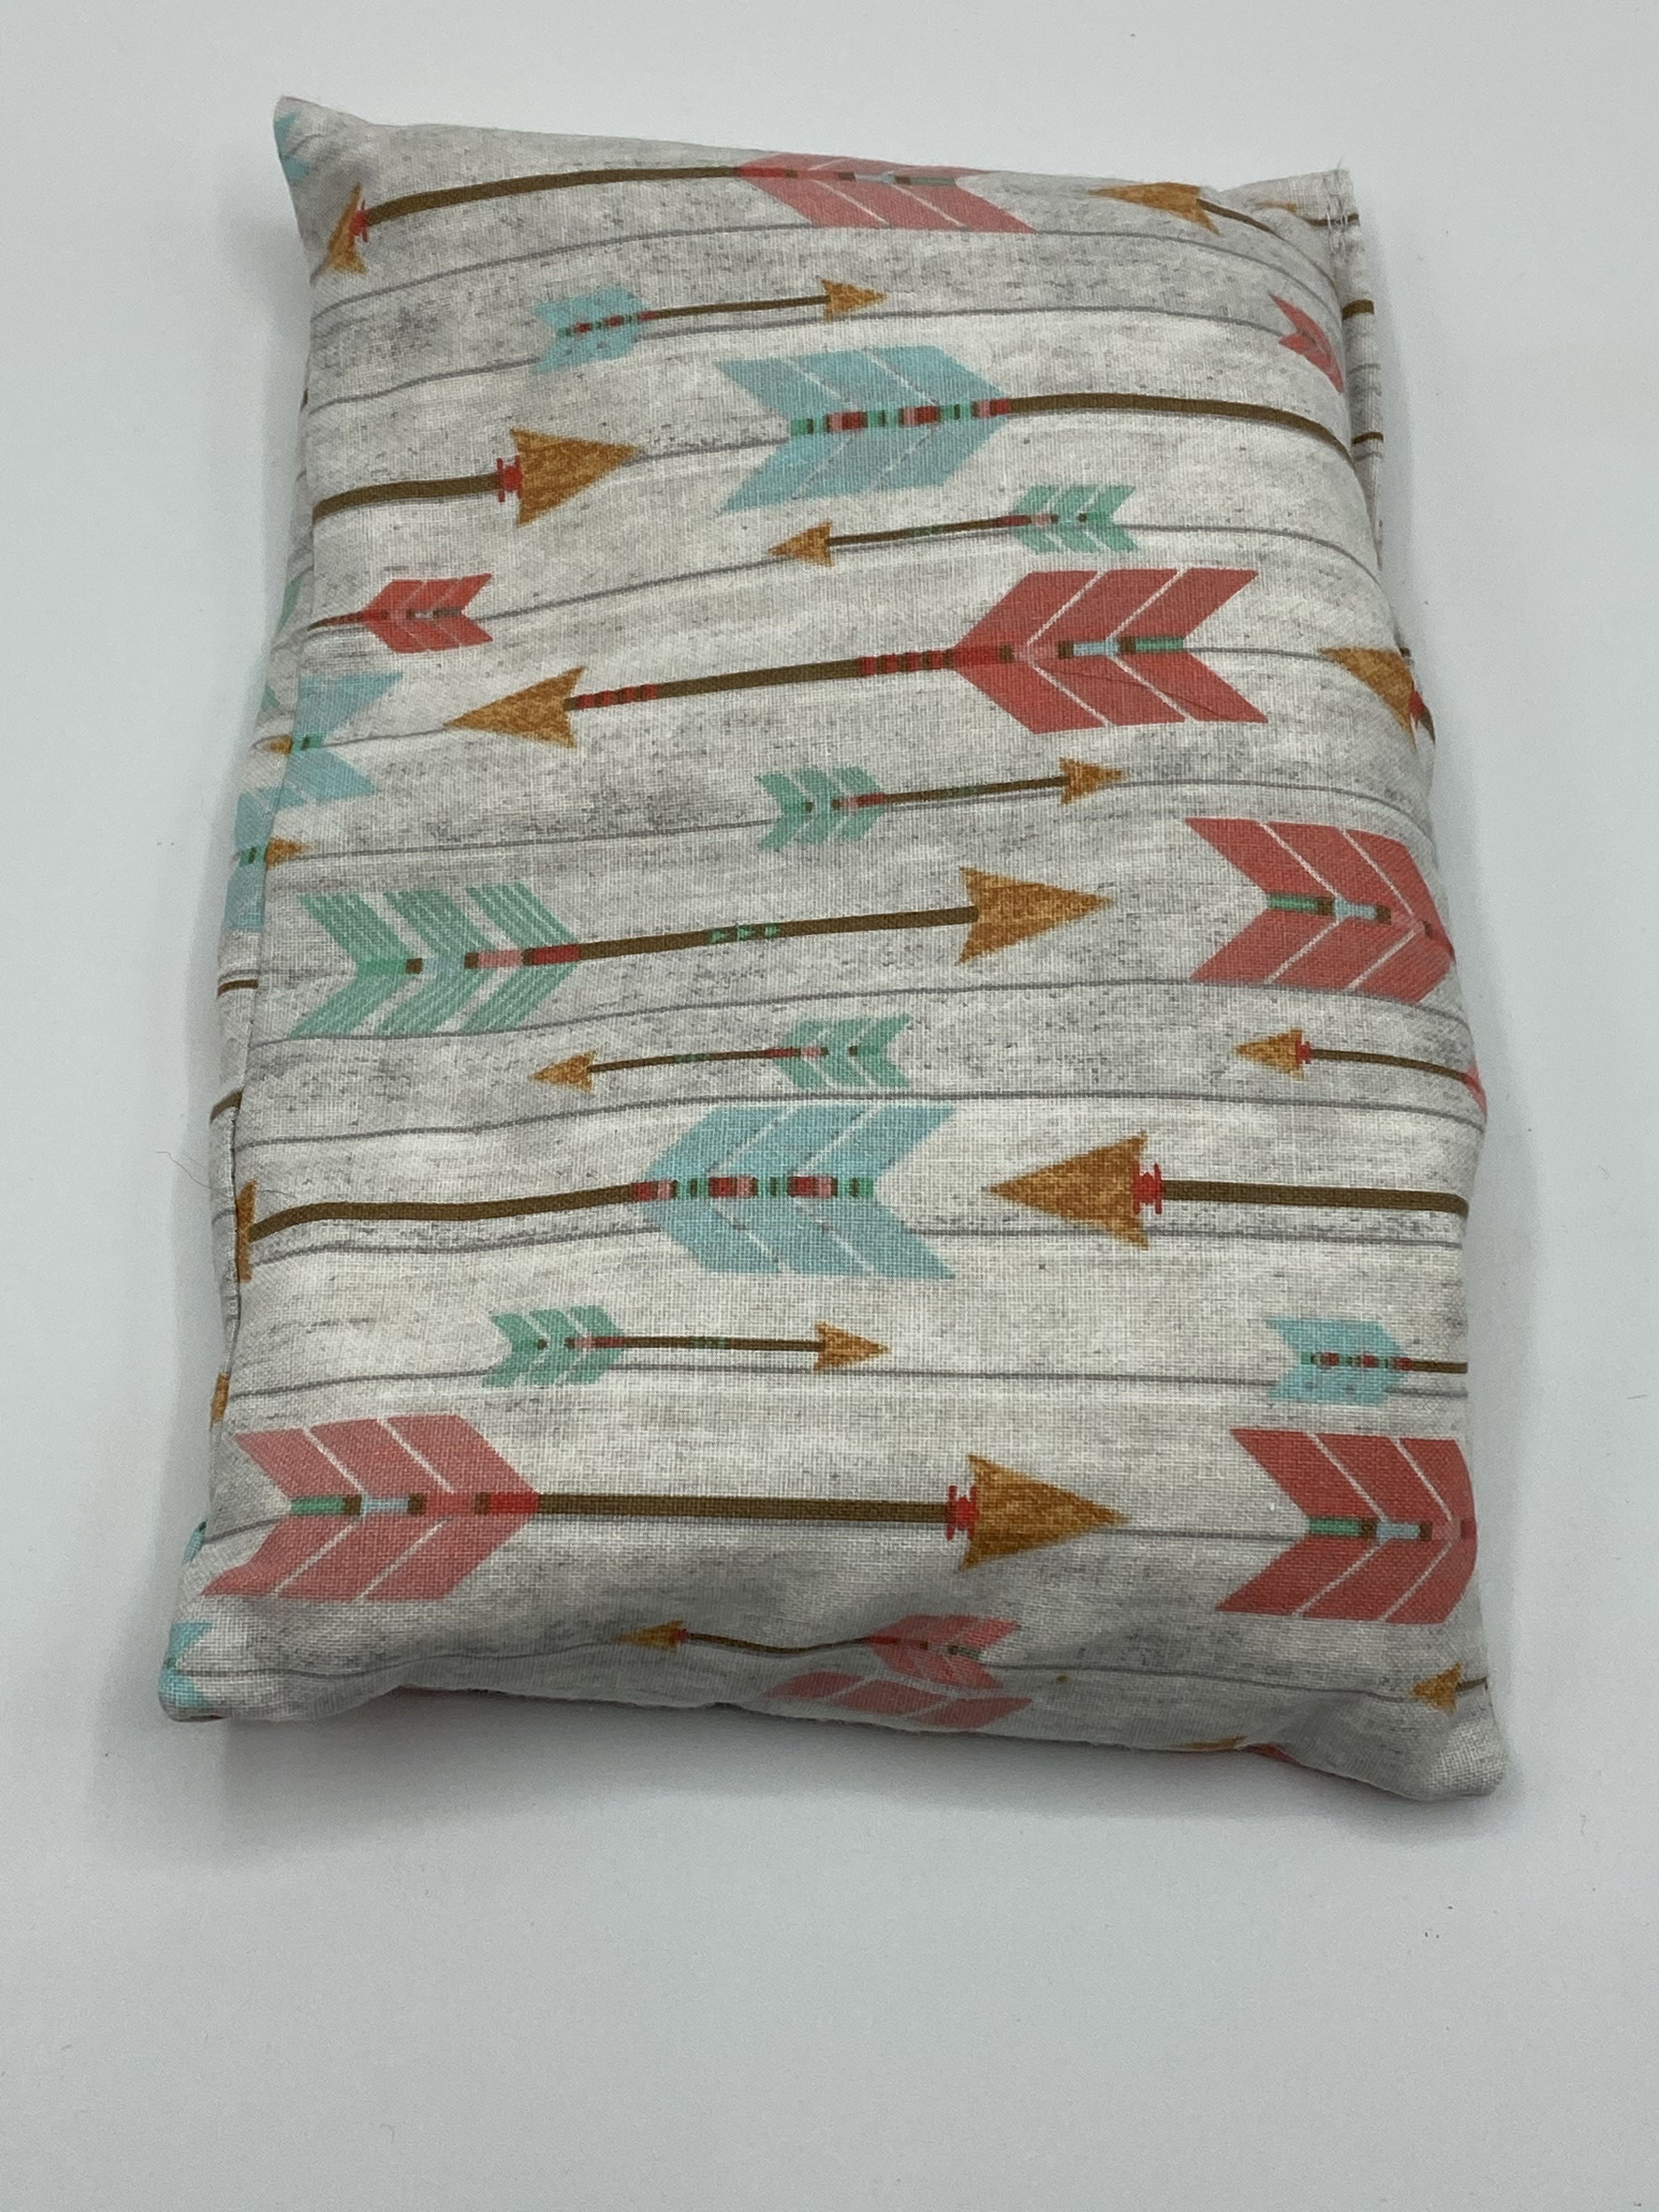 Heating And Cooling Therapeutic Rice Bags Different Designs